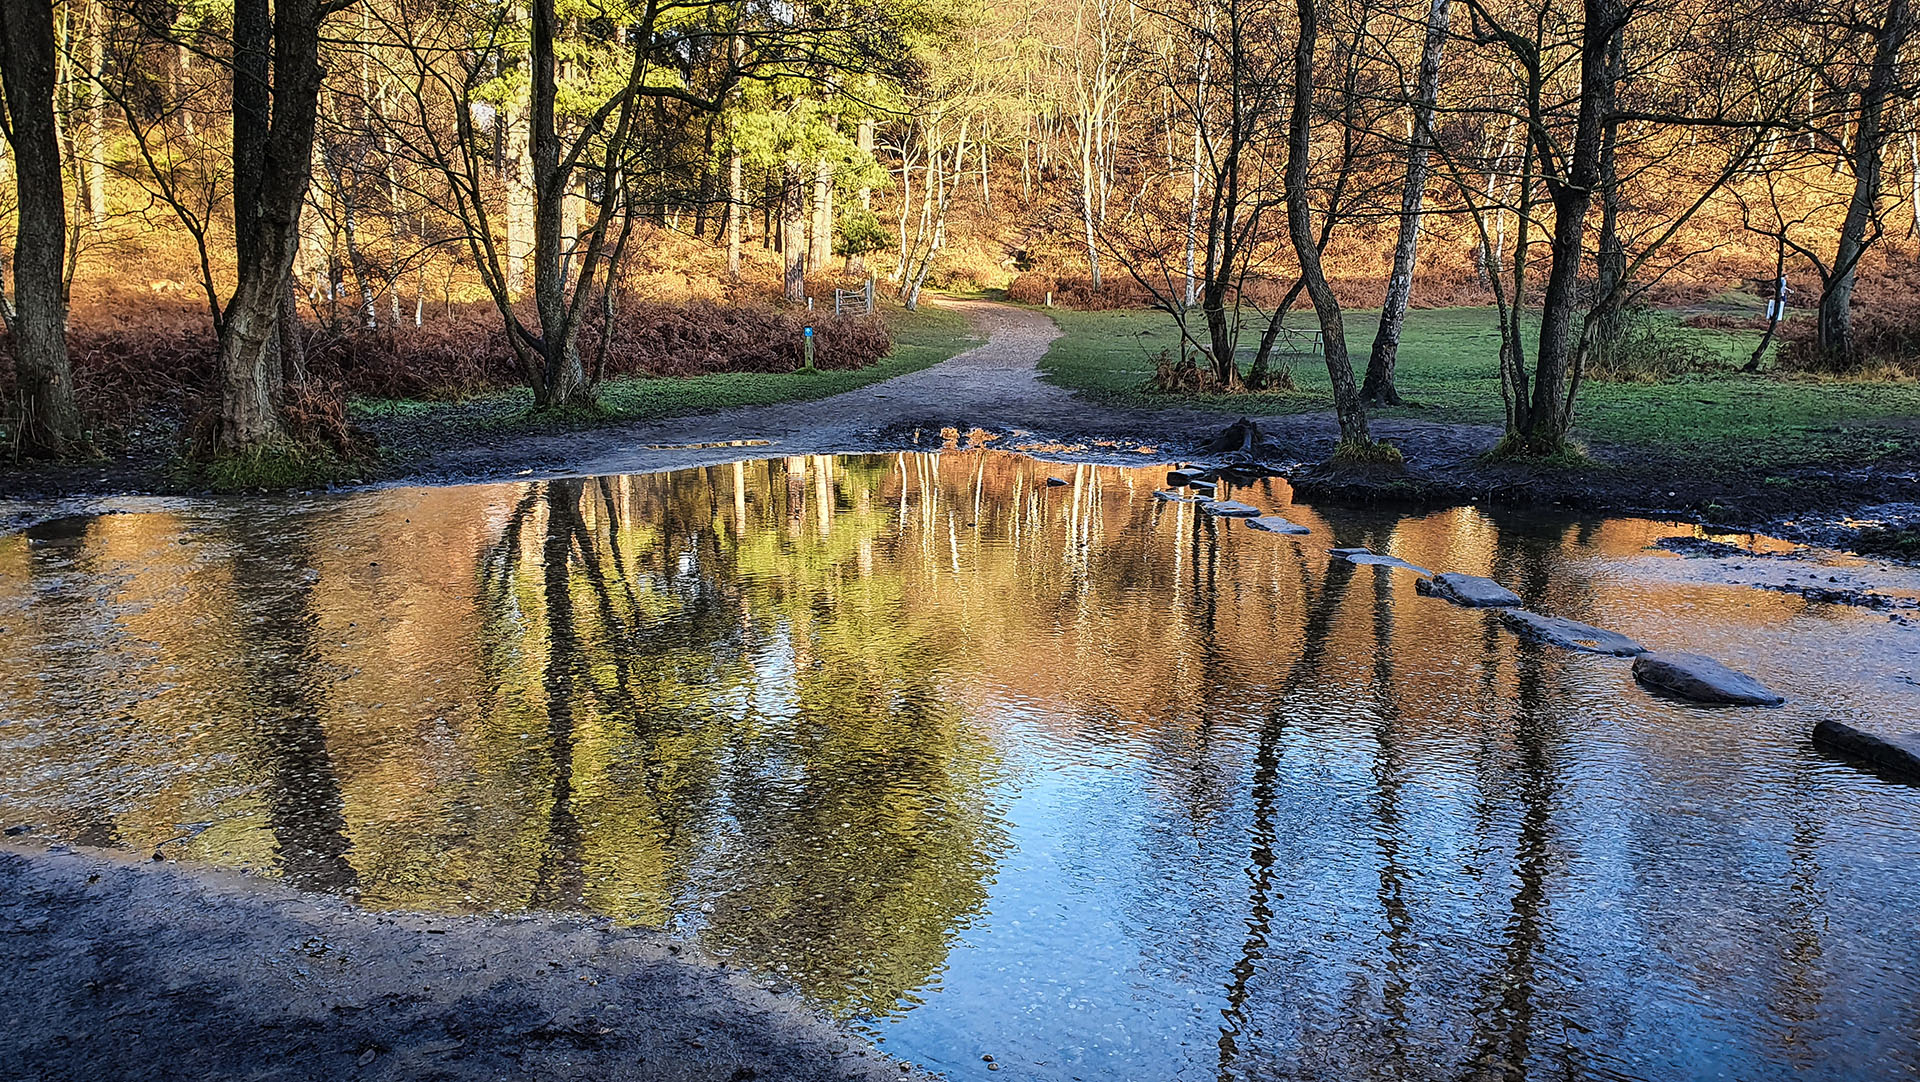 Autumn colours at the Stepping Stones crossing of the Sher brook, one of the loveliest spots at Staffordshire's beautiful Cannock Chase